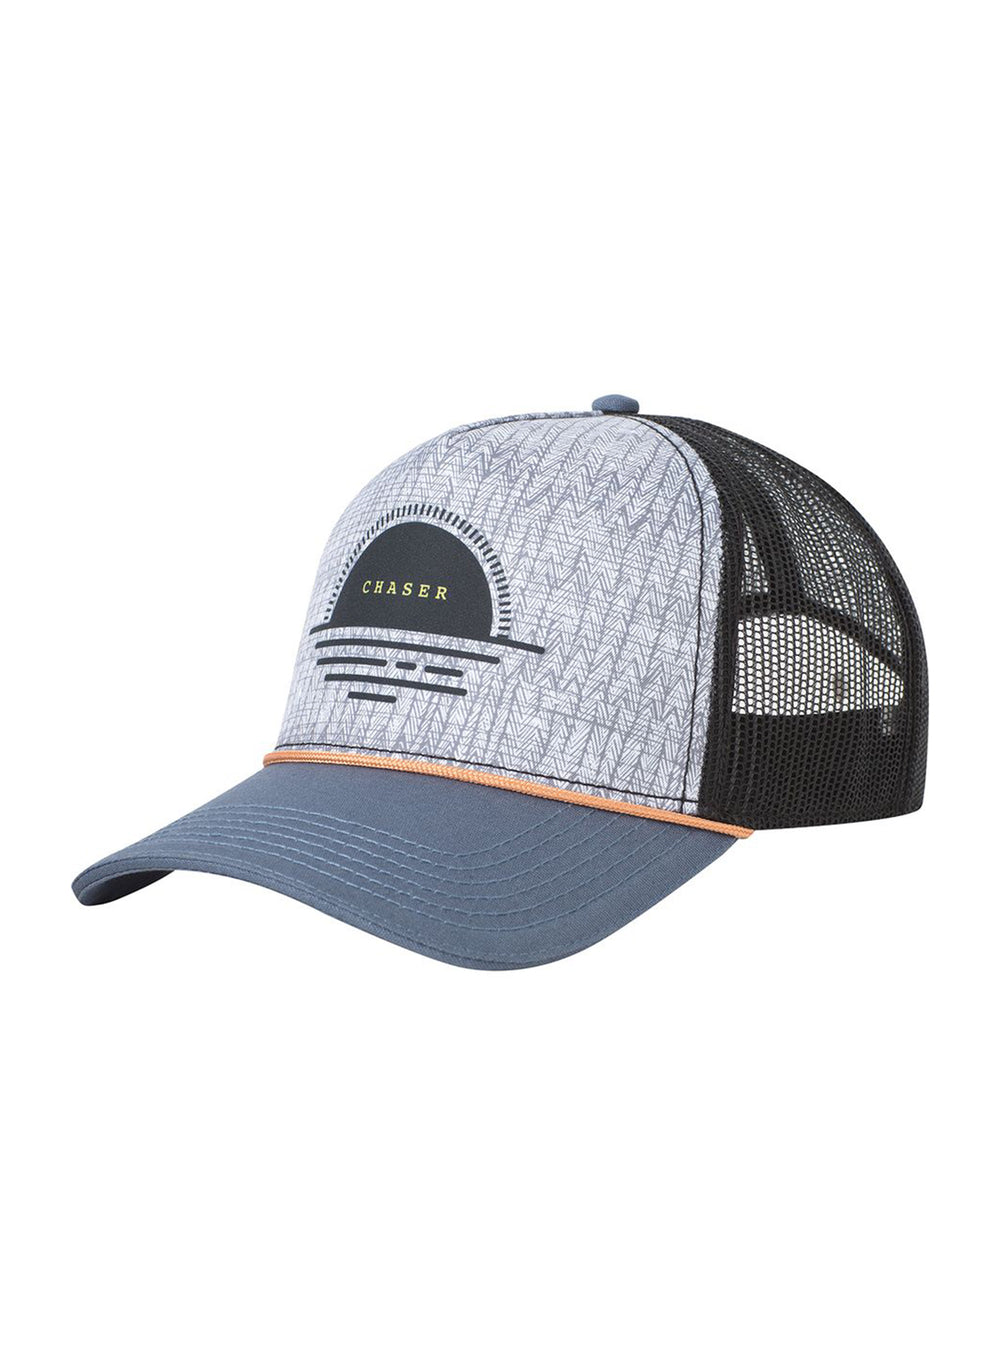 Prana Journeyman Trucker Hat - Women's